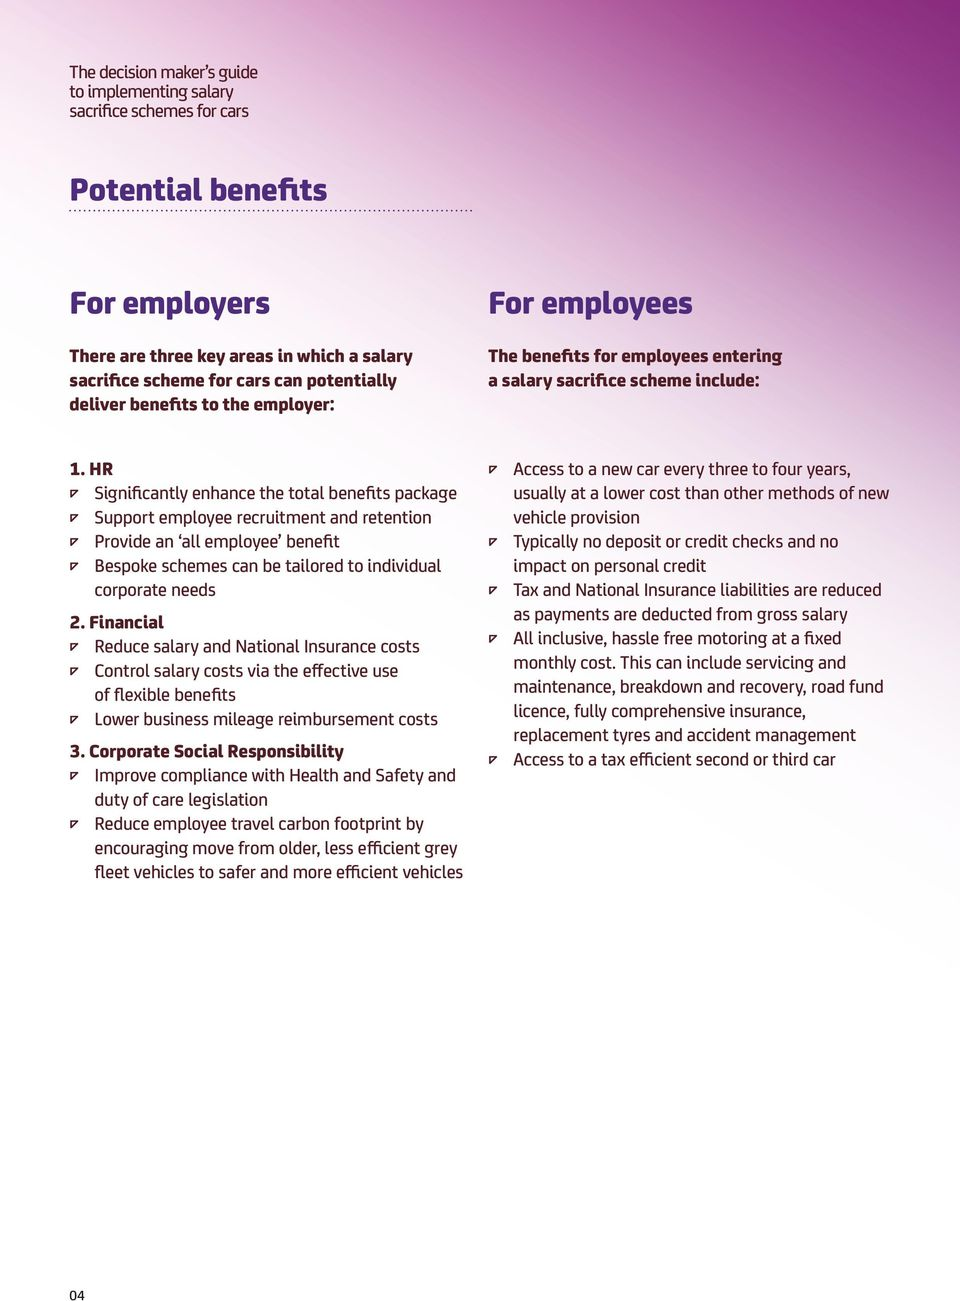 HR Significantly enhance the total benefits package Support employee recruitment and retention Provide an all employee benefit Bespoke schemes can be tailored to individual corporate needs 2.